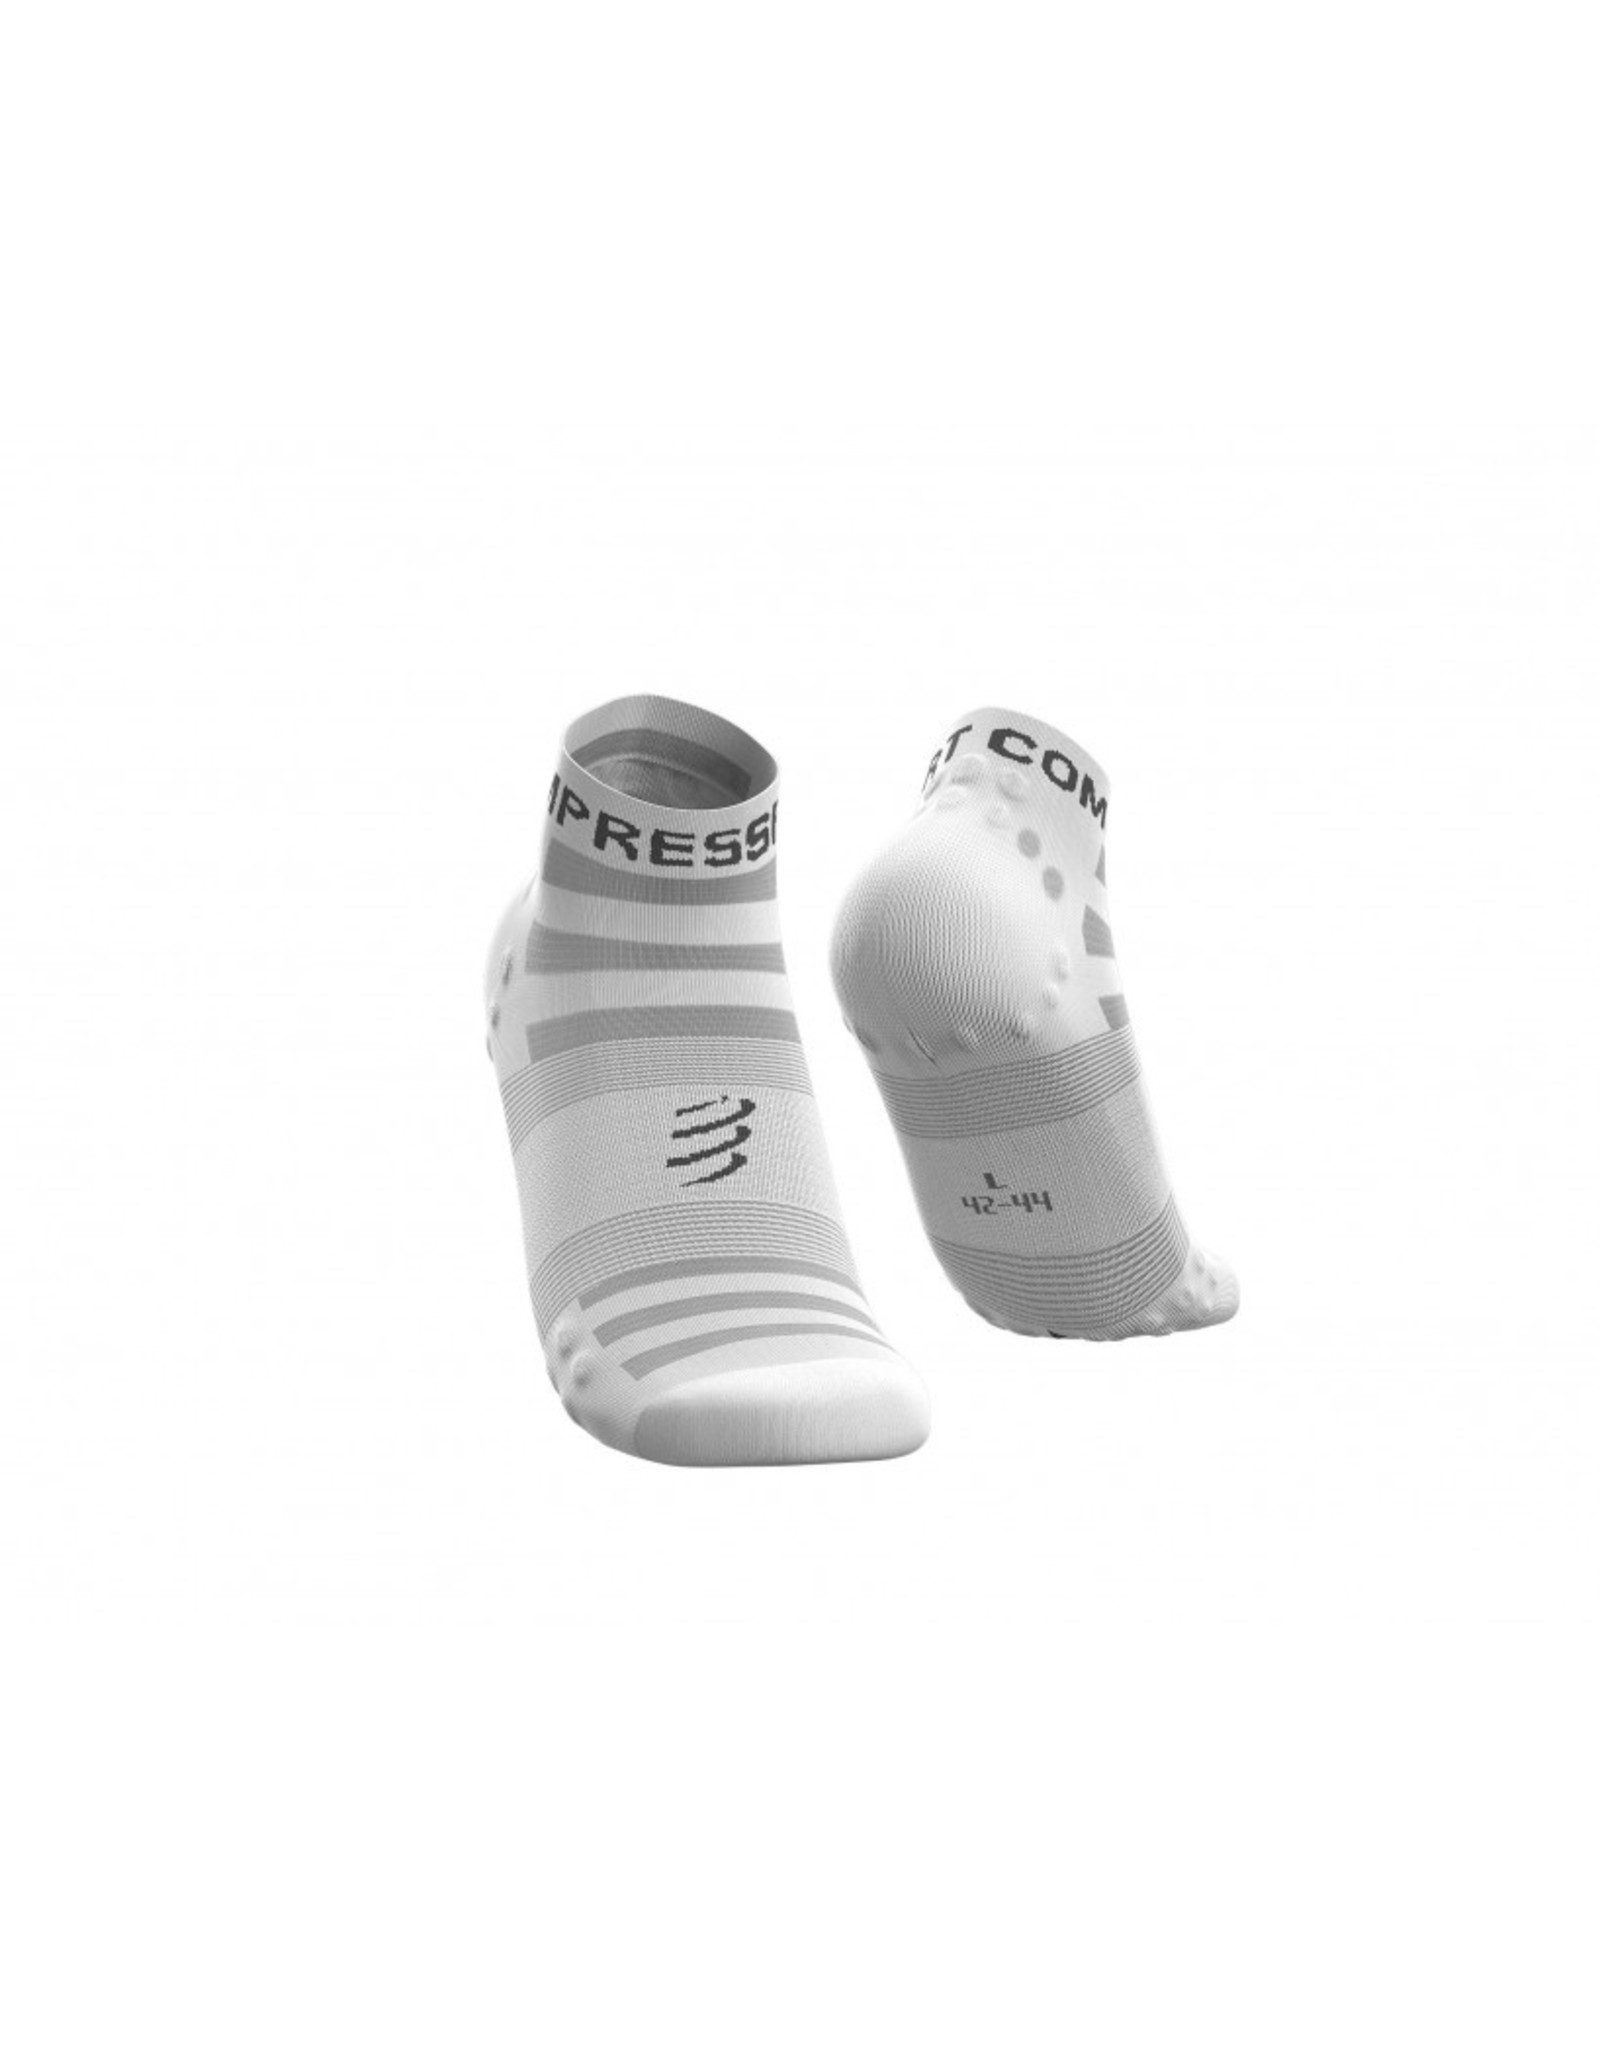 Compressport Pro Racing Socks V3.0 Ultralight Run Low Chaussettes De Running - Blanc